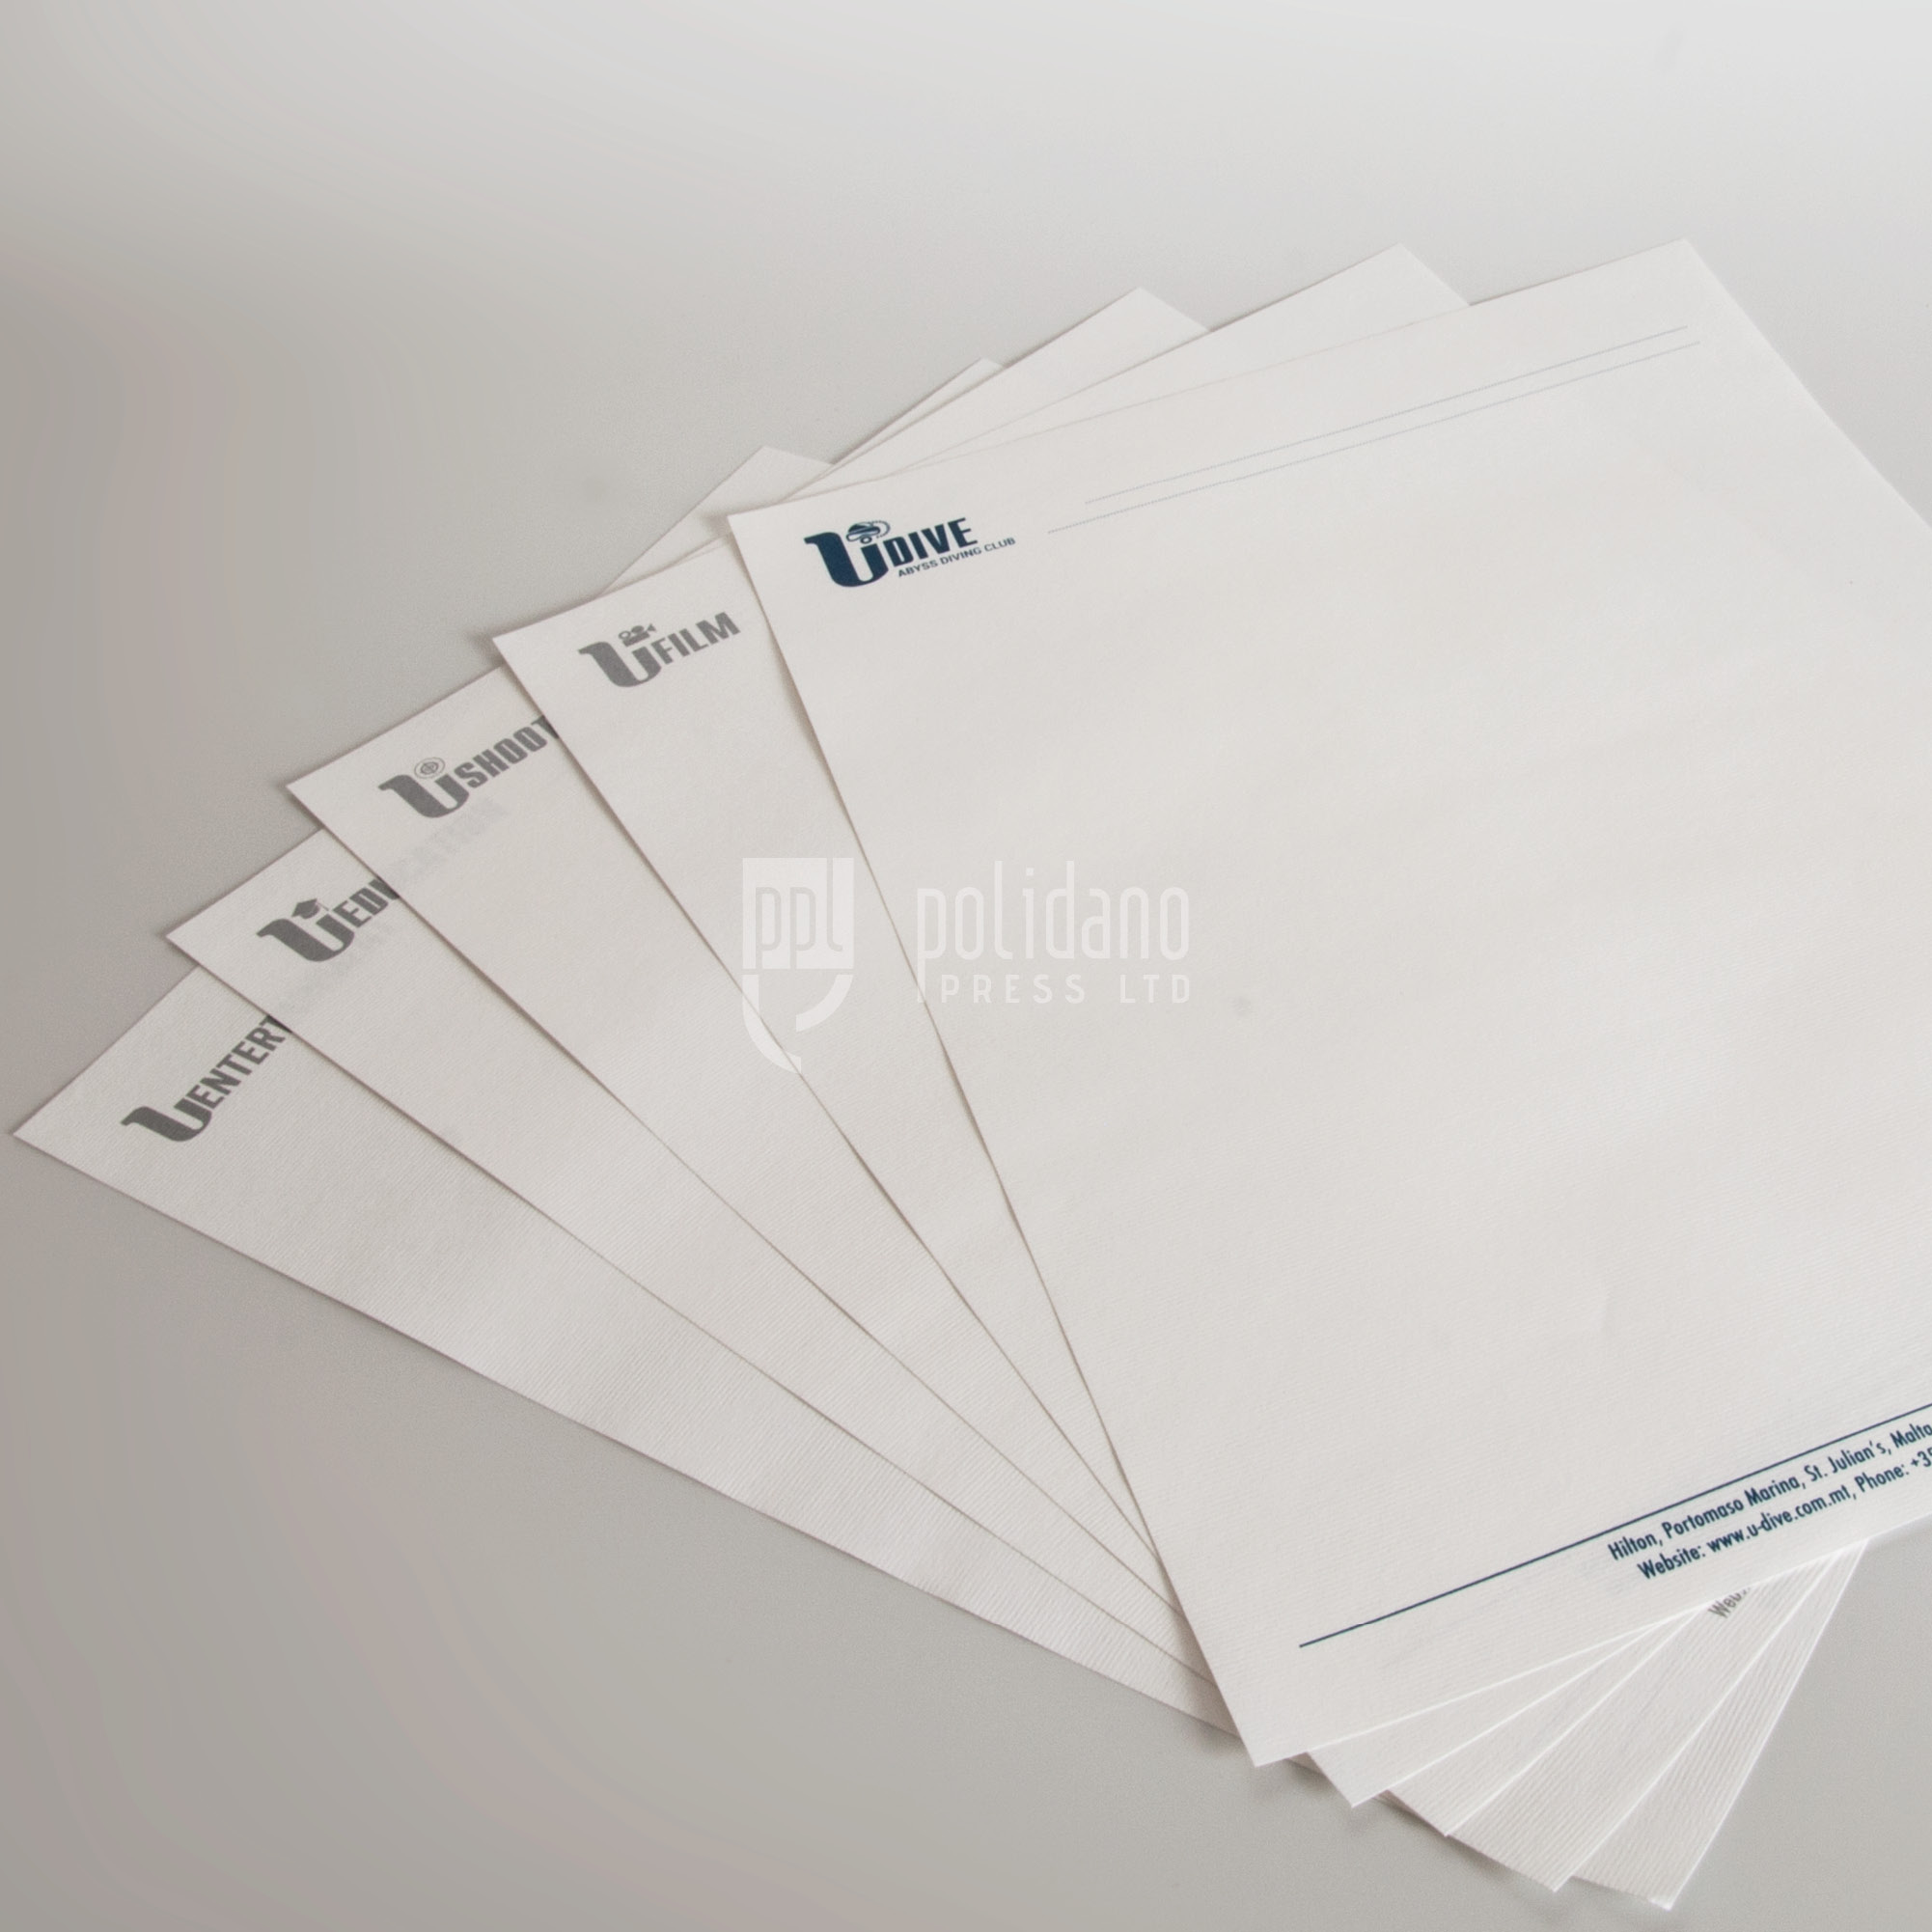 U group letterheads